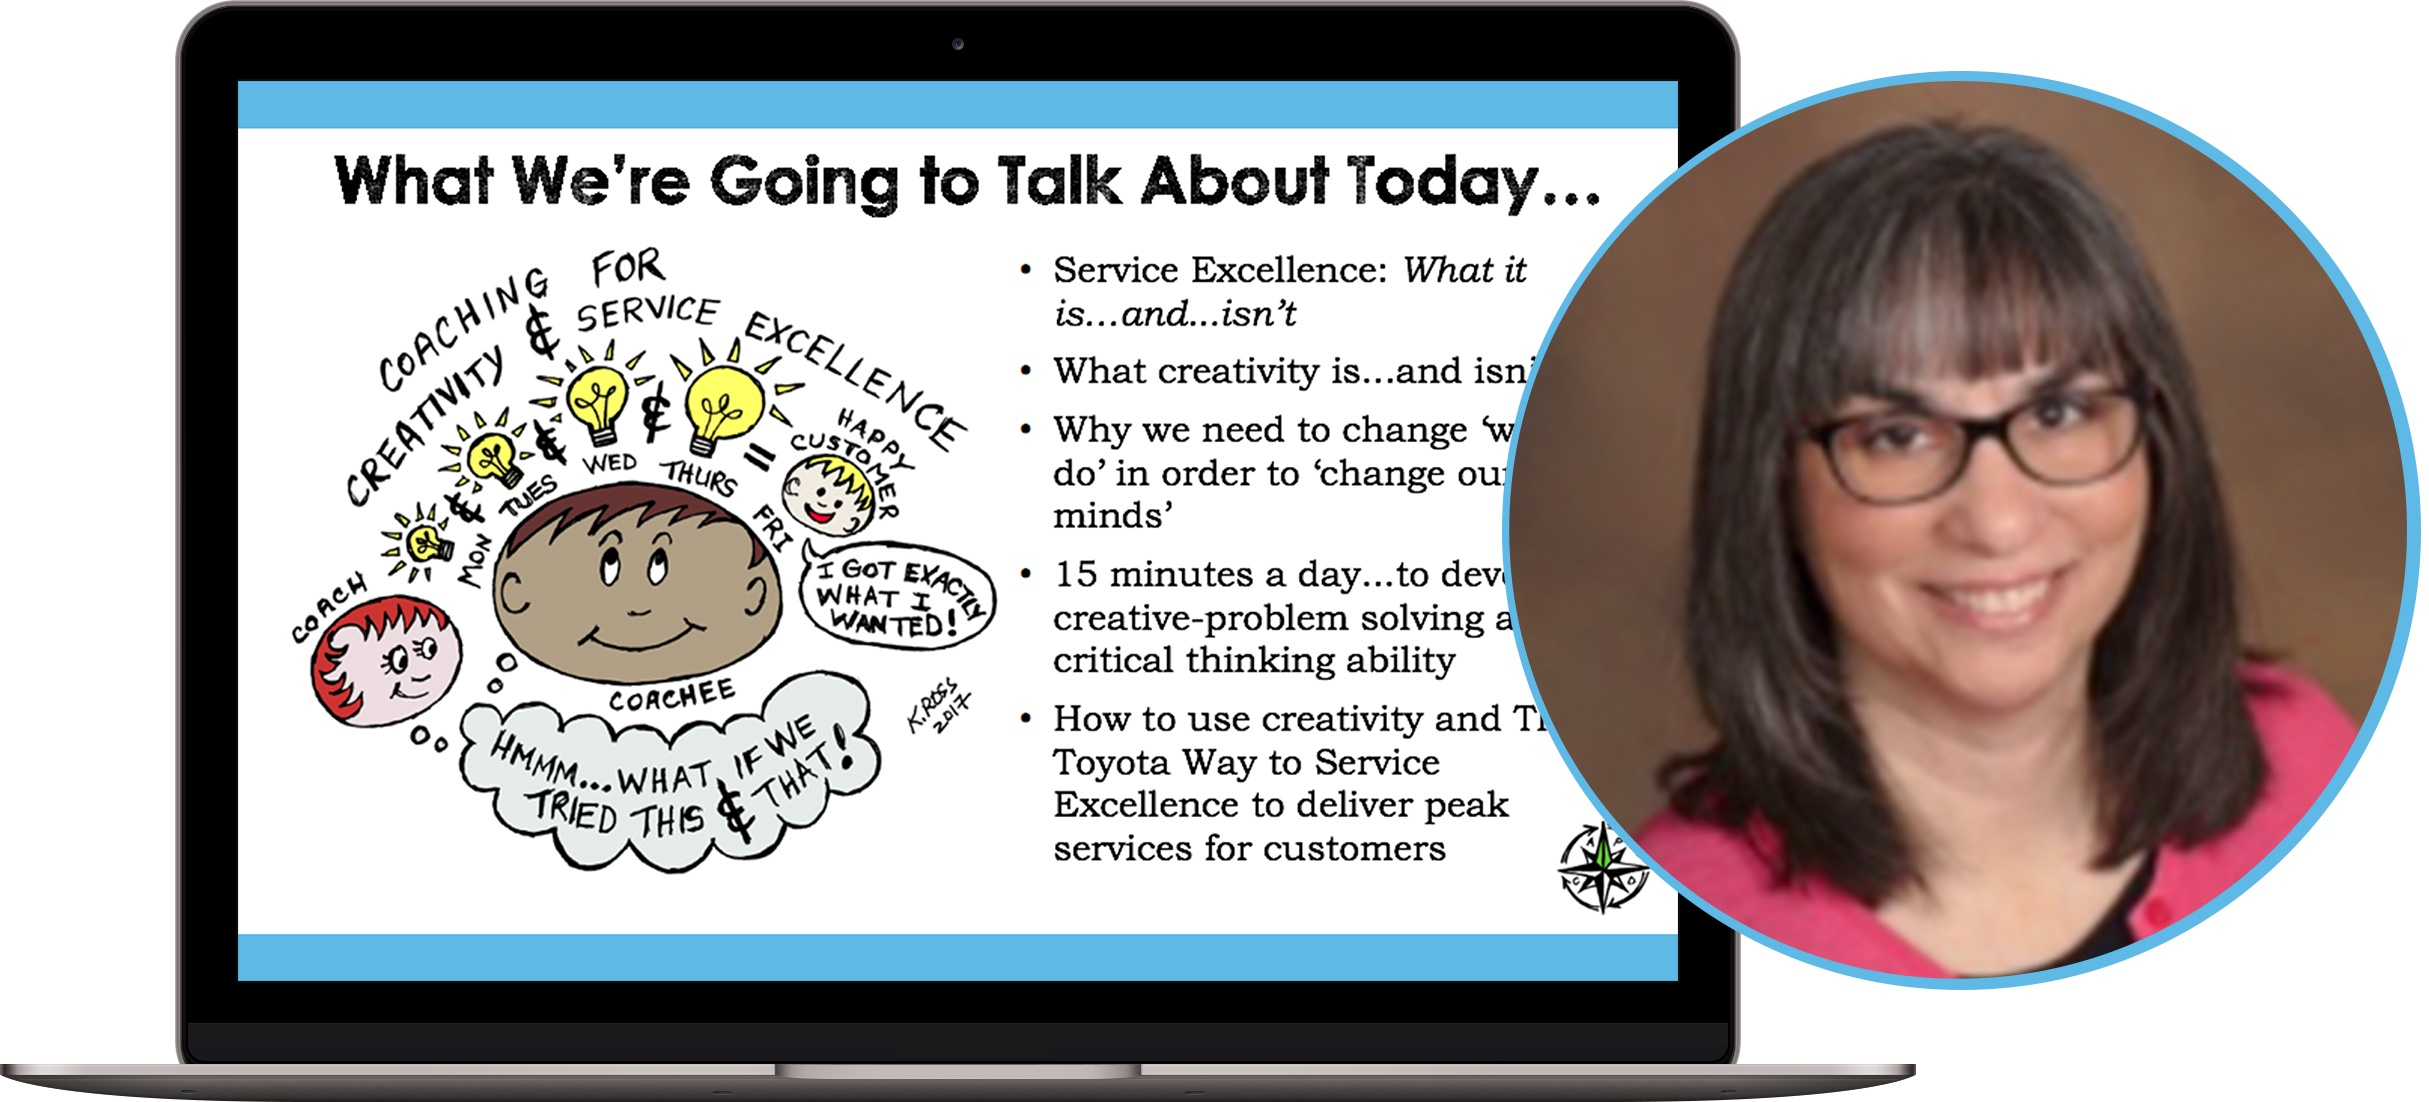 How to Coach for Creativity & Service Excellence